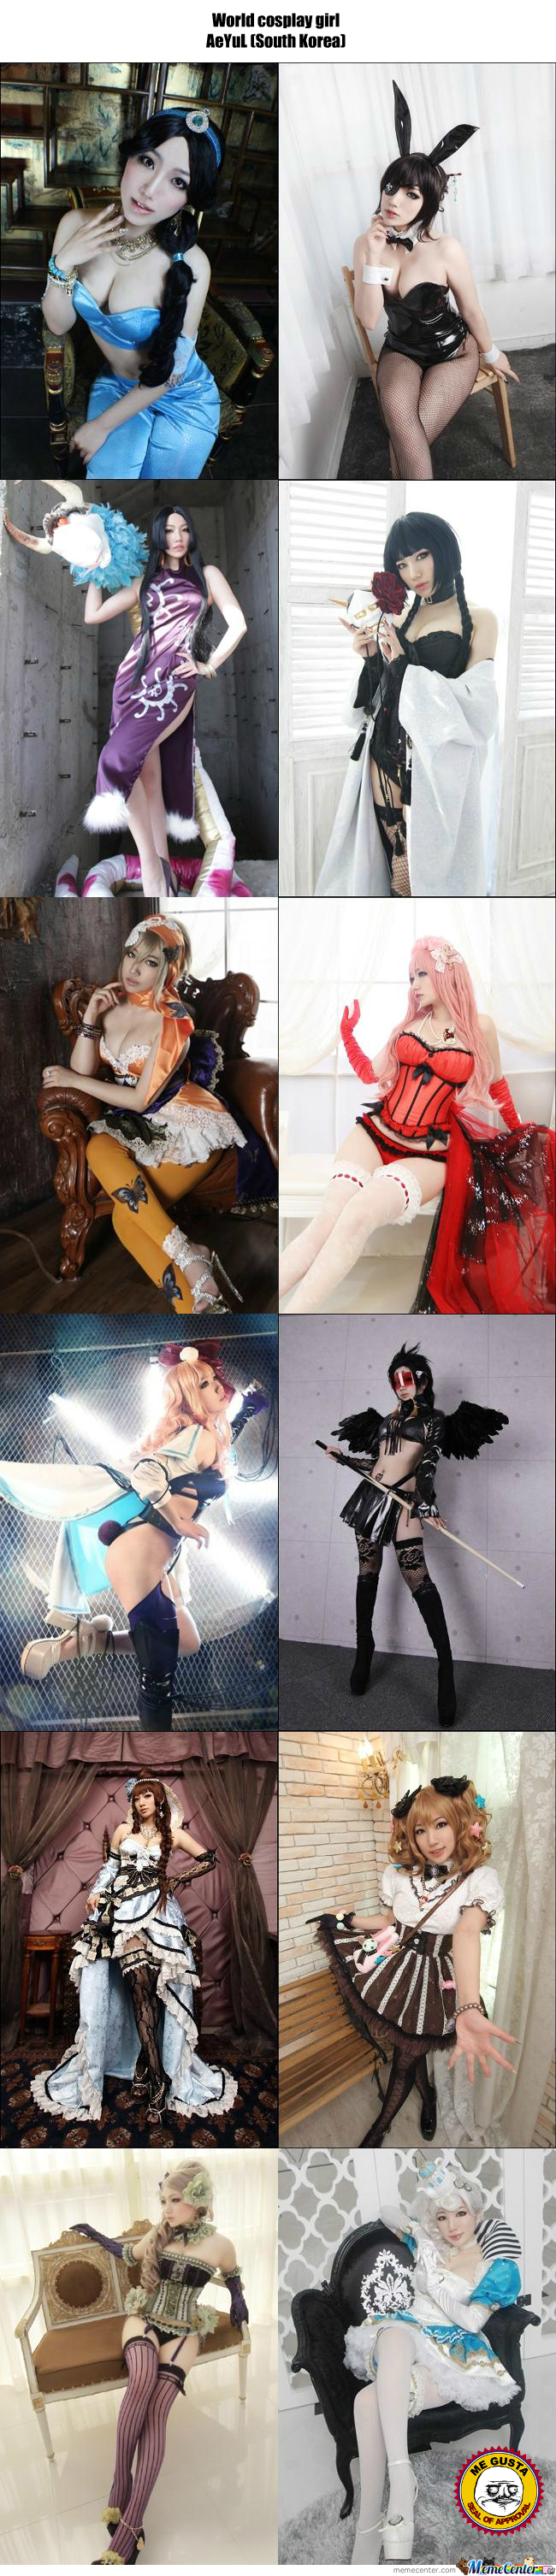 Cosplay Girl 95 : Aeyul (South Korea)